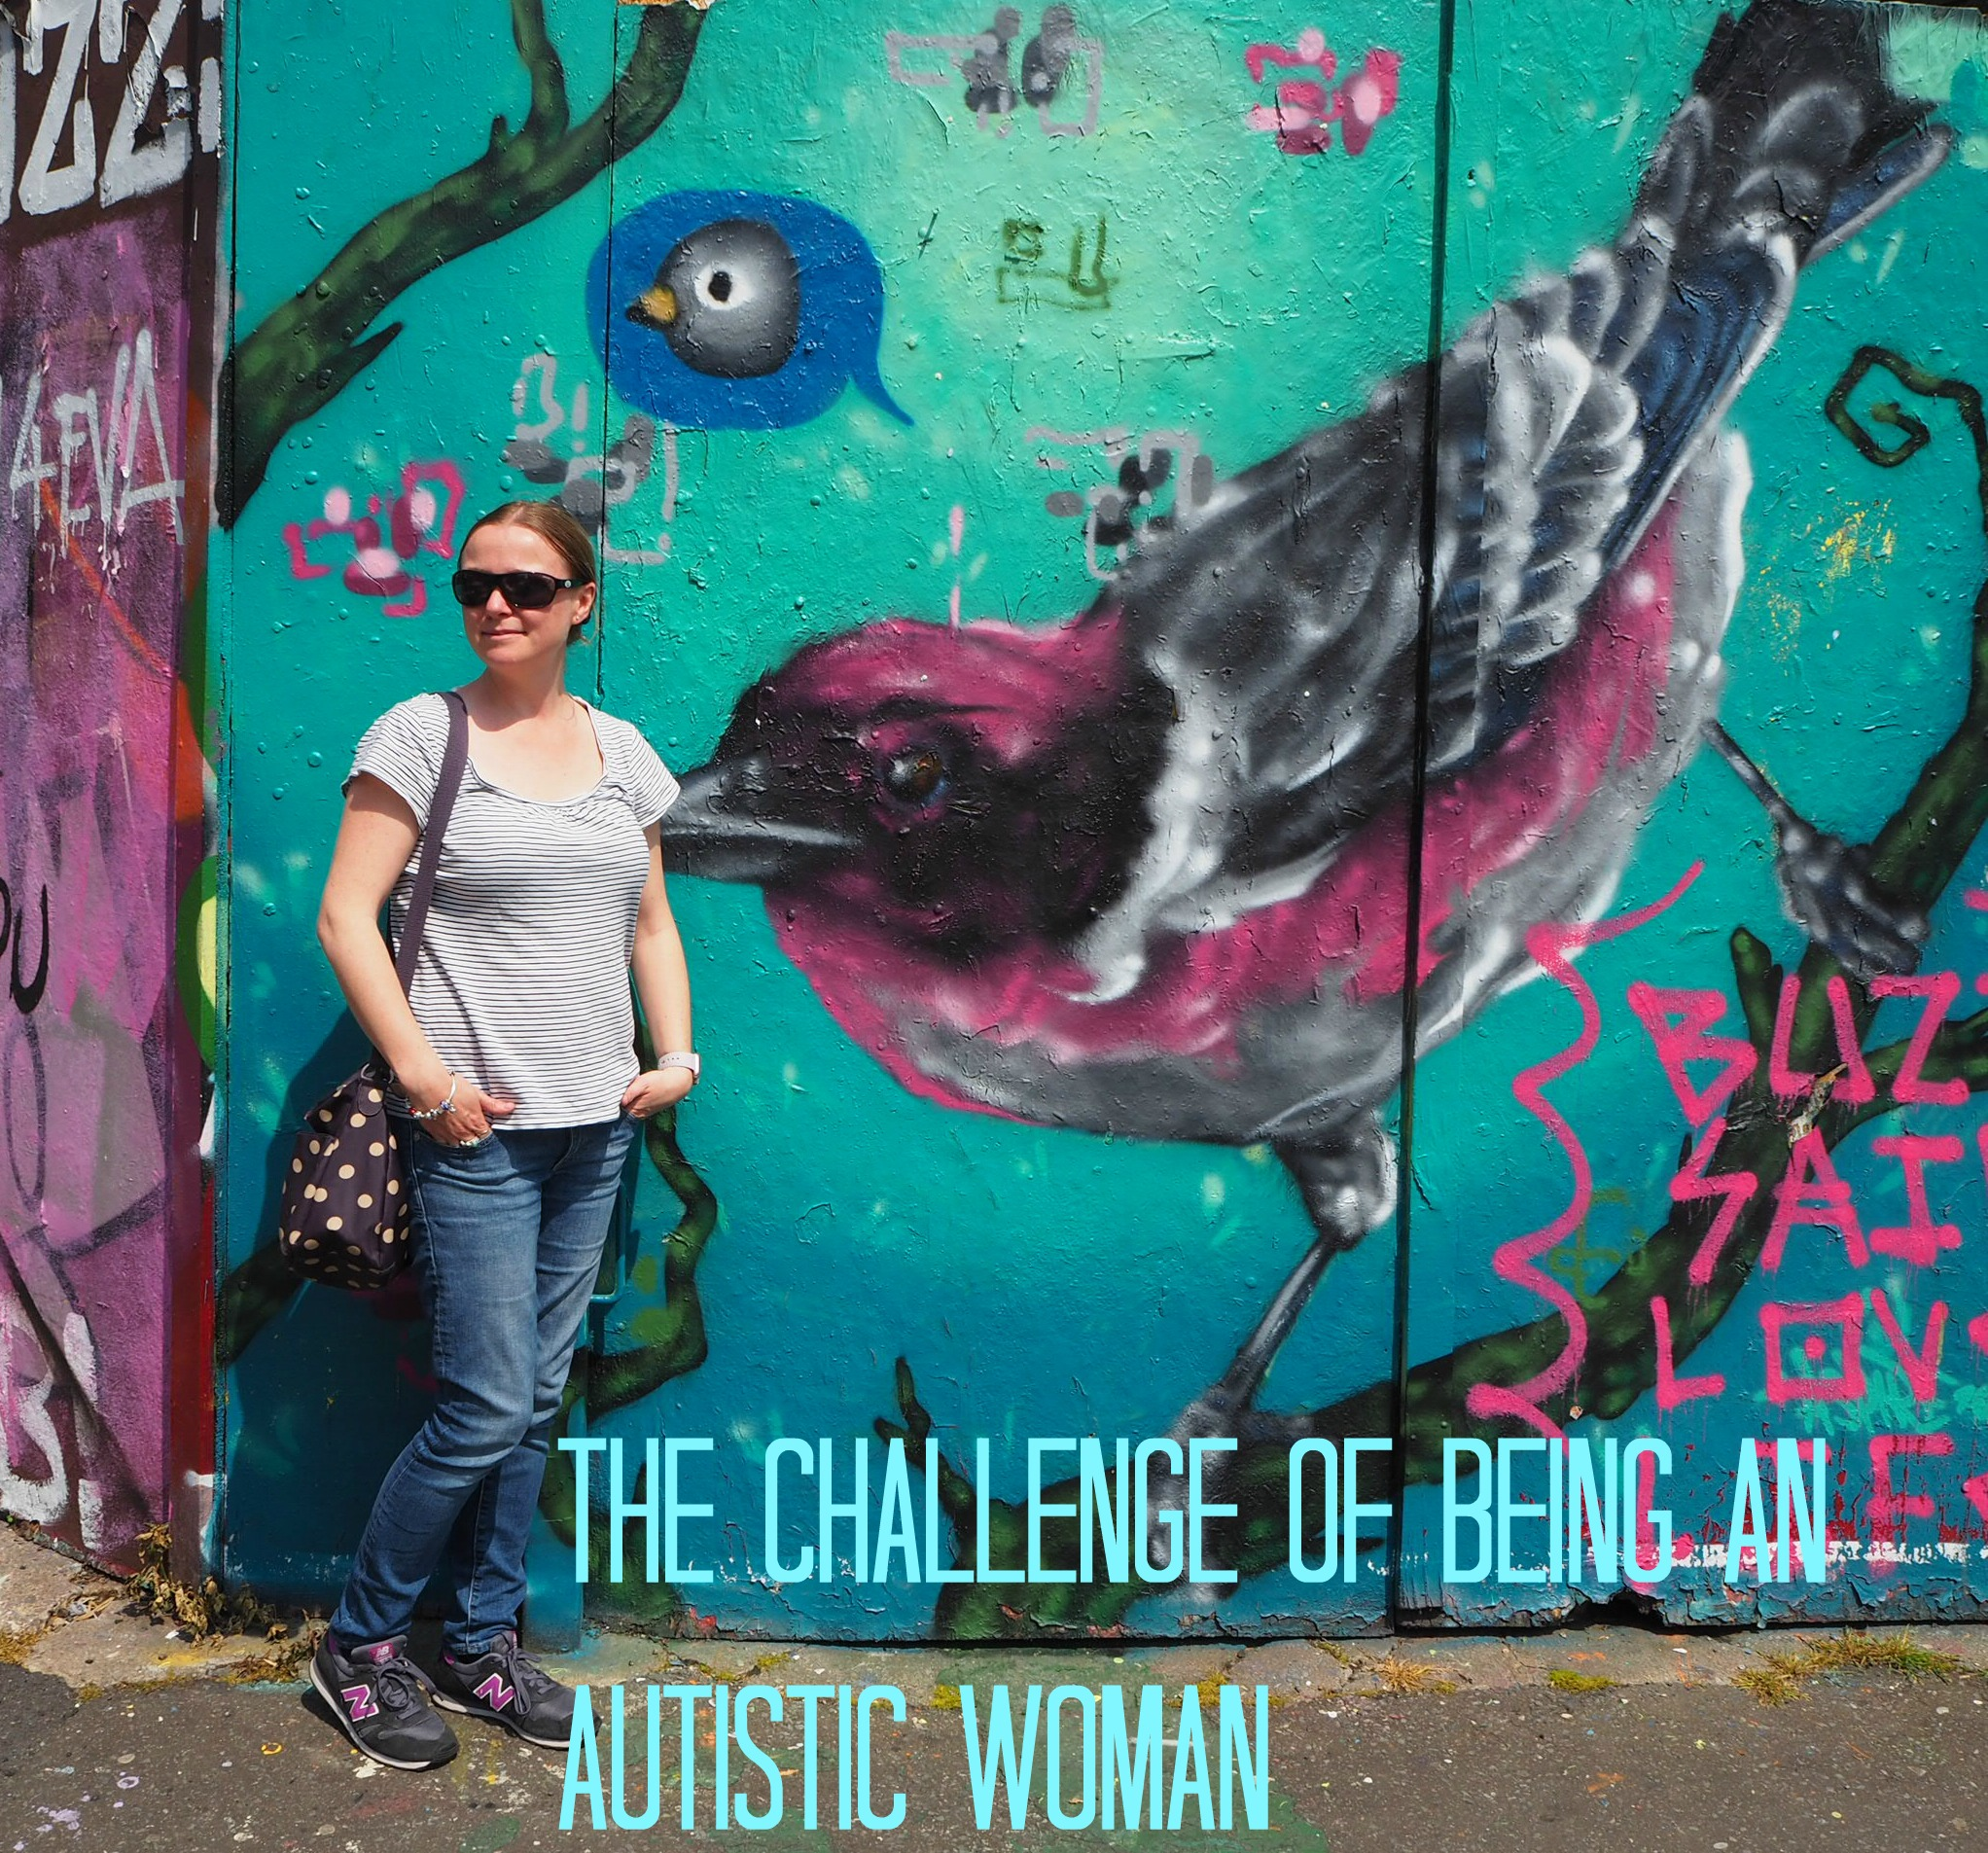 The challenge of being an autistic woman